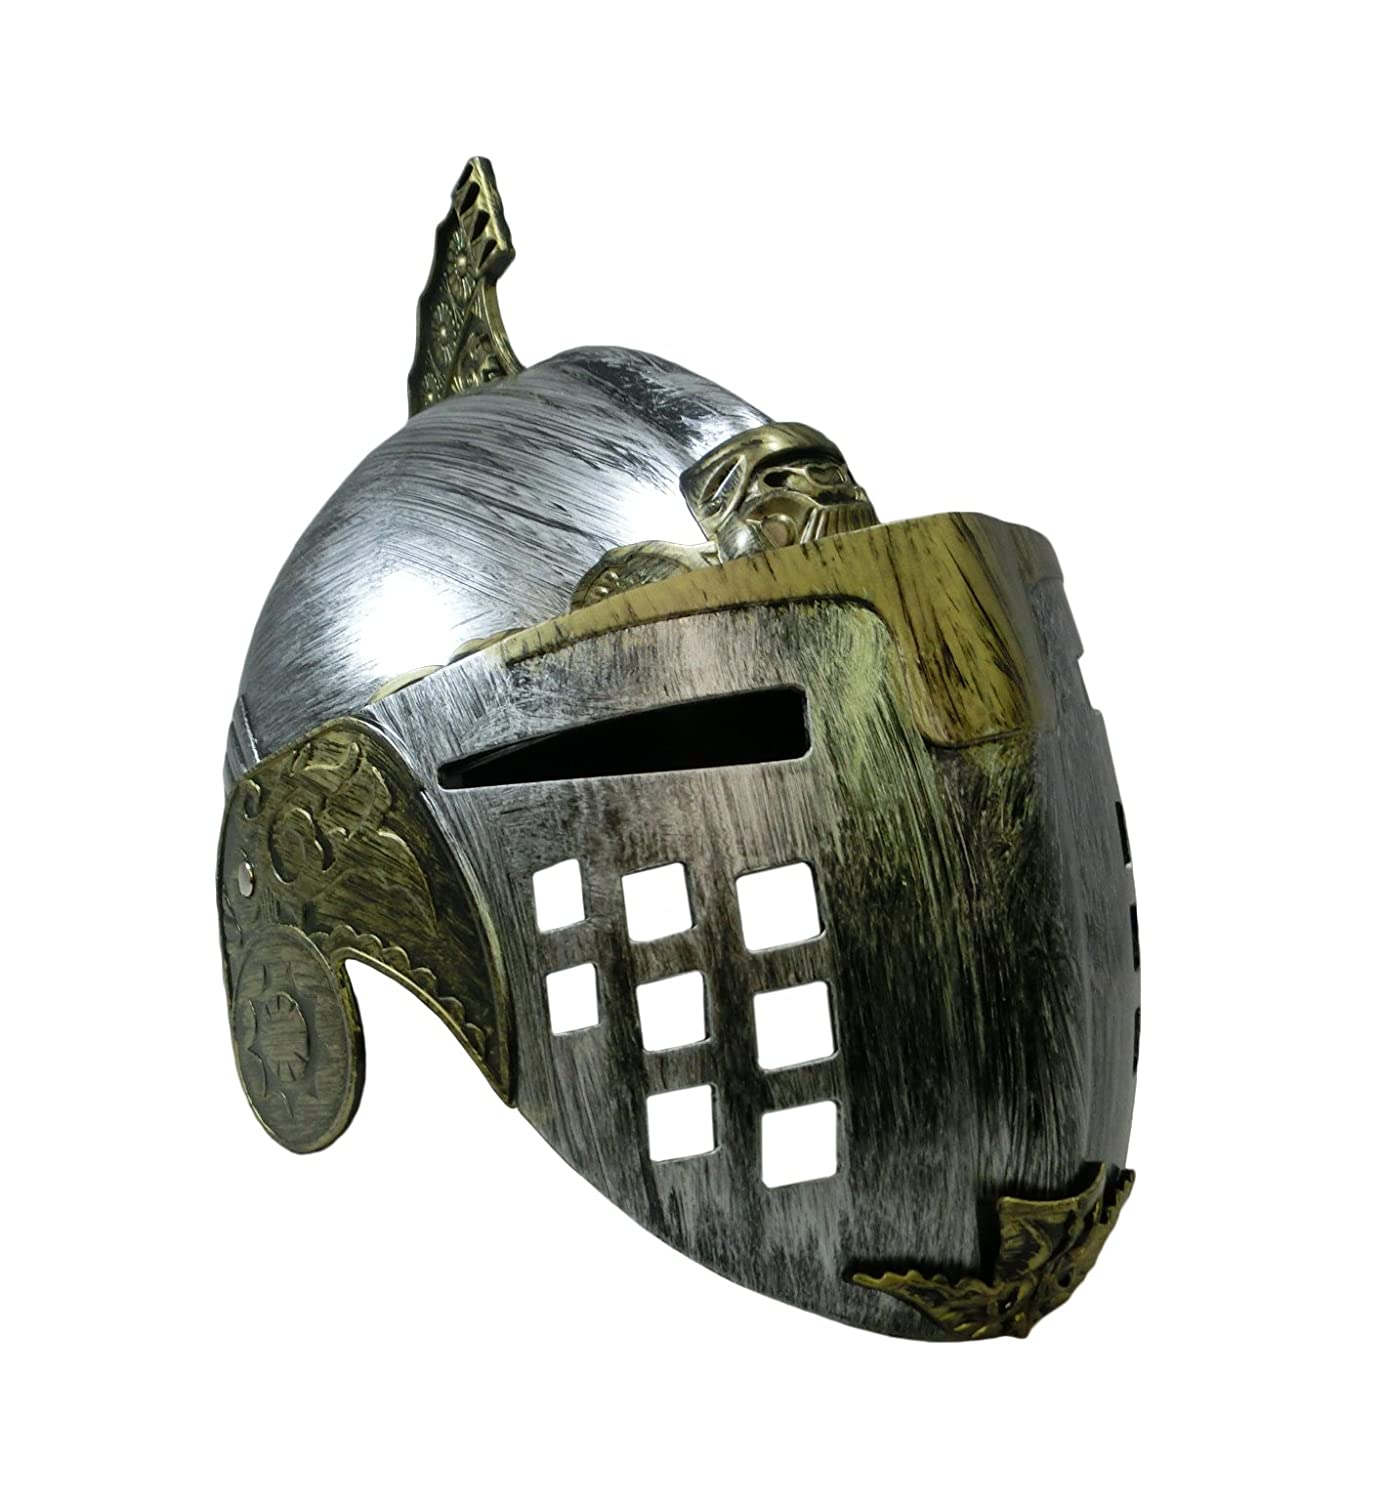 Gladiator Roman Helmet with Face Mask Knight Armor Hat Adult Spartan Costume Nicky Bigs Novelties 46408